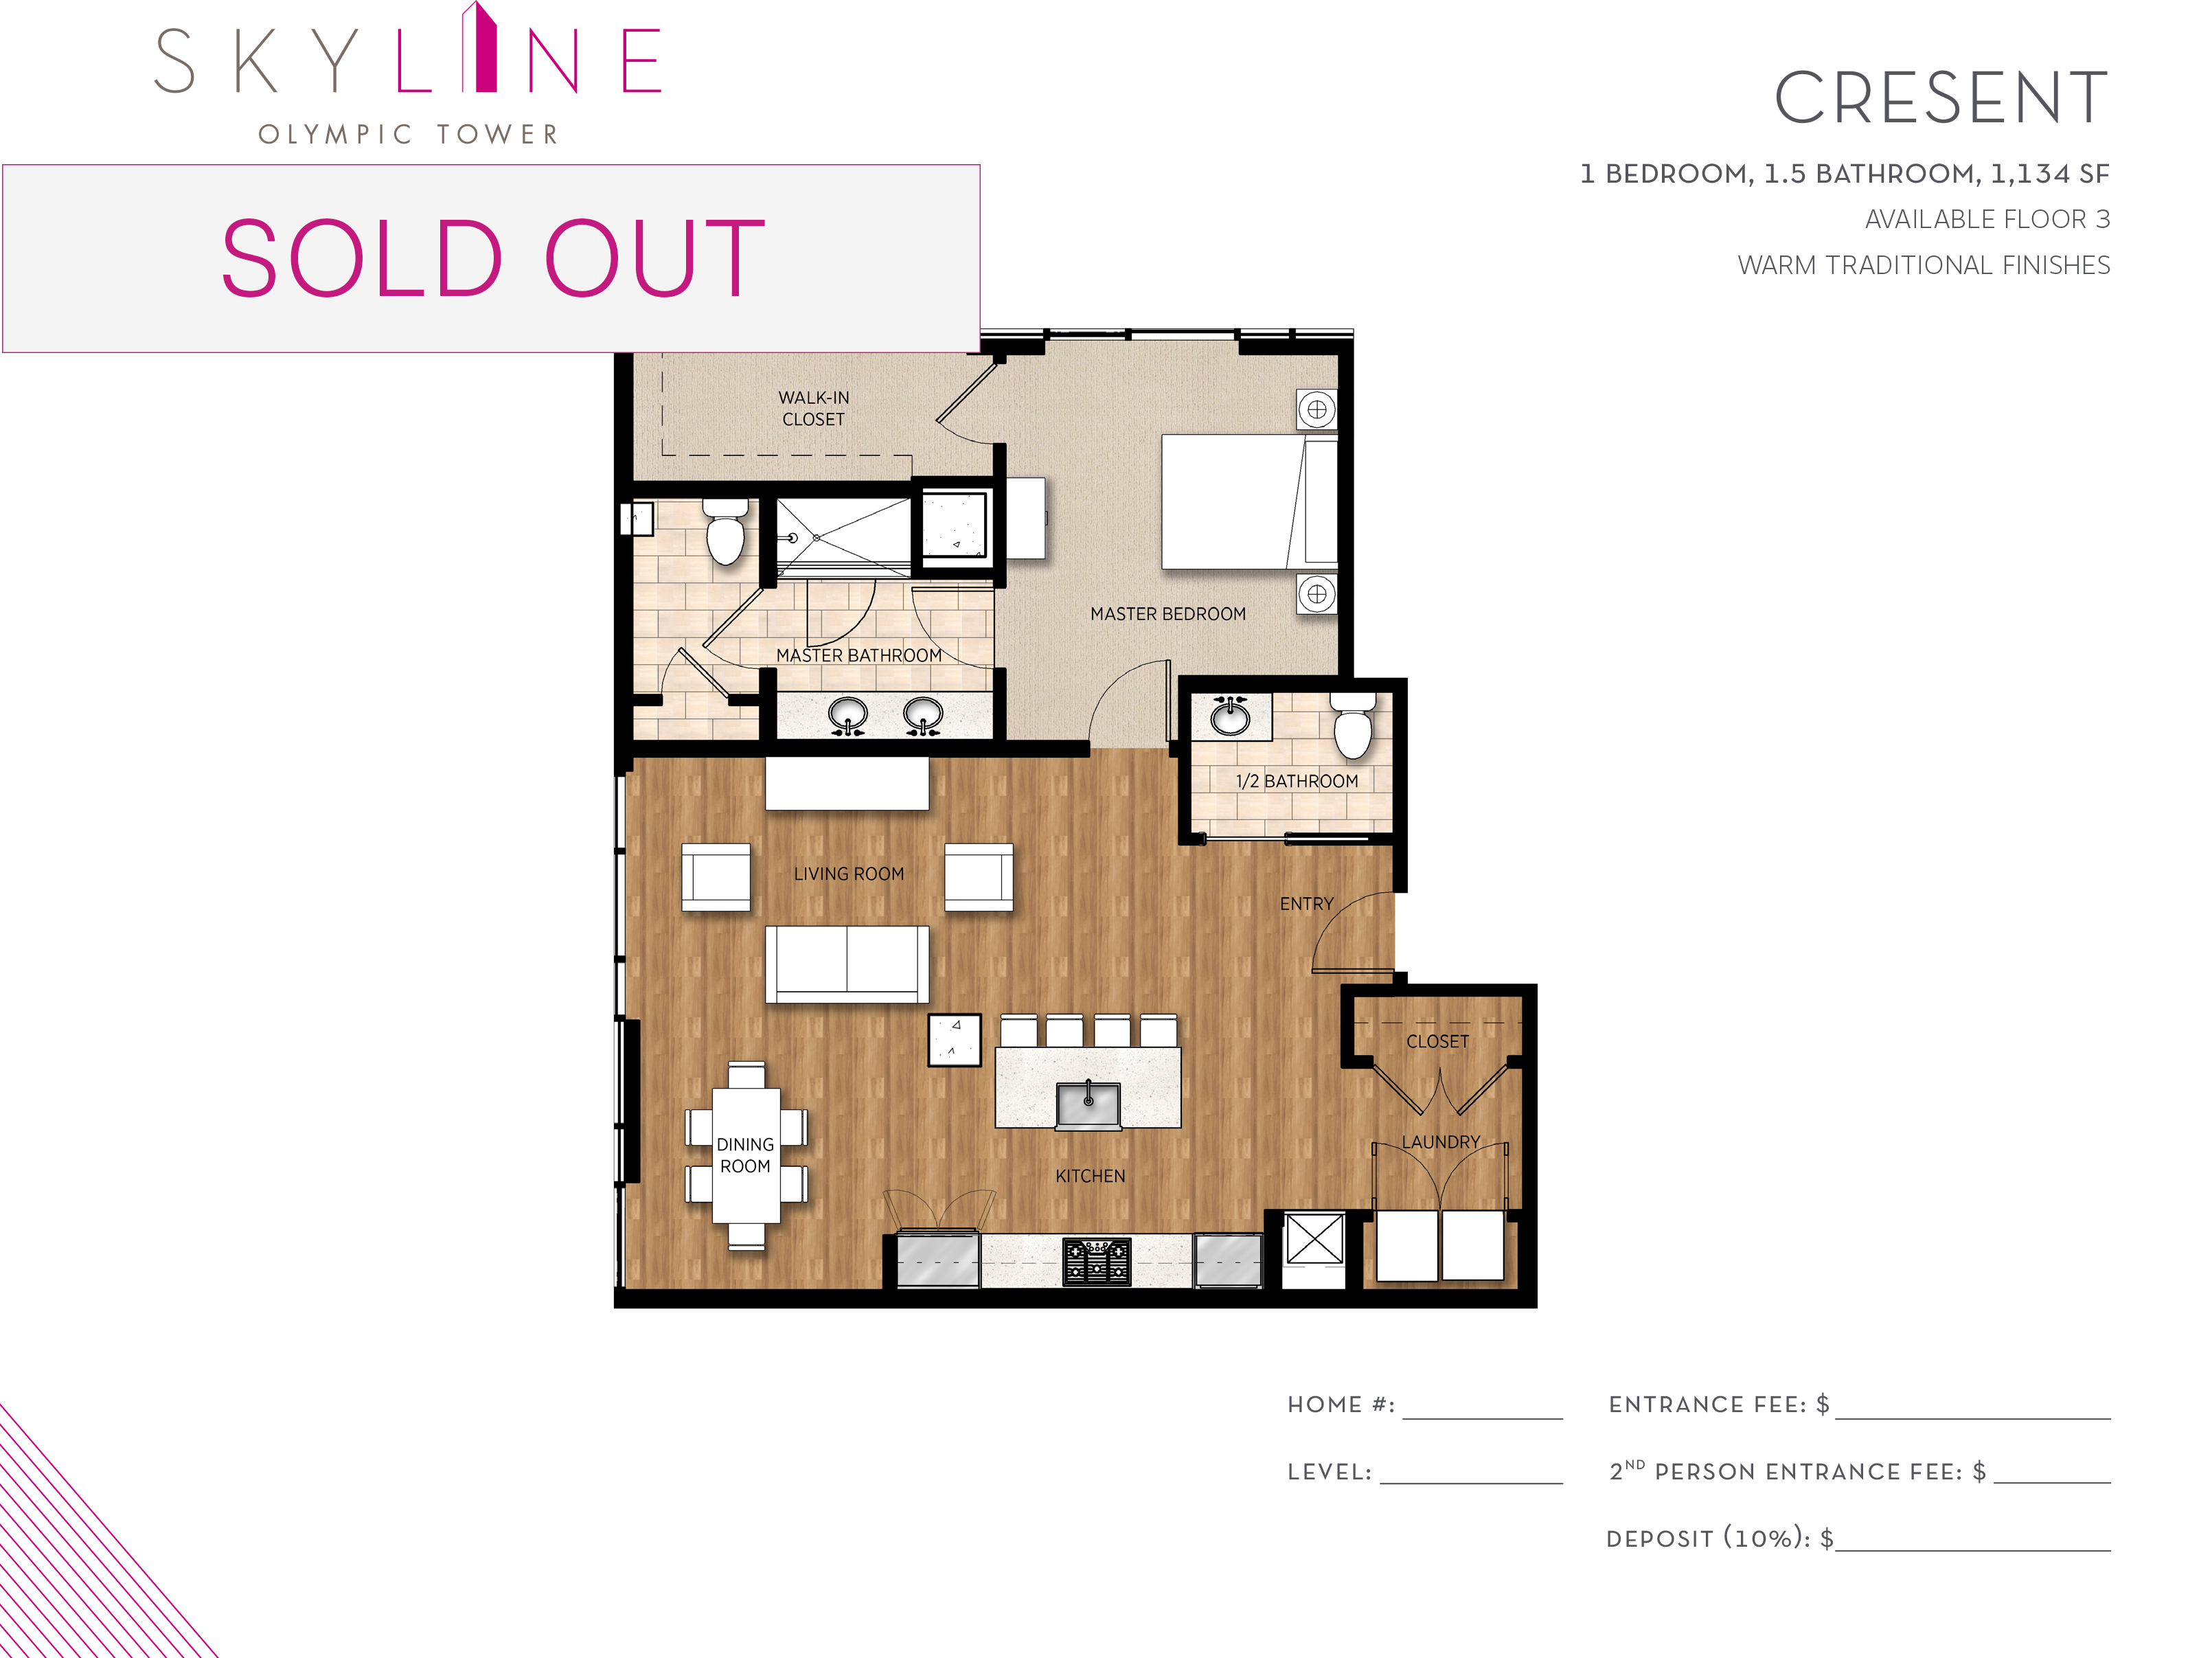 Olympic Tower Floor Plan - Crescent